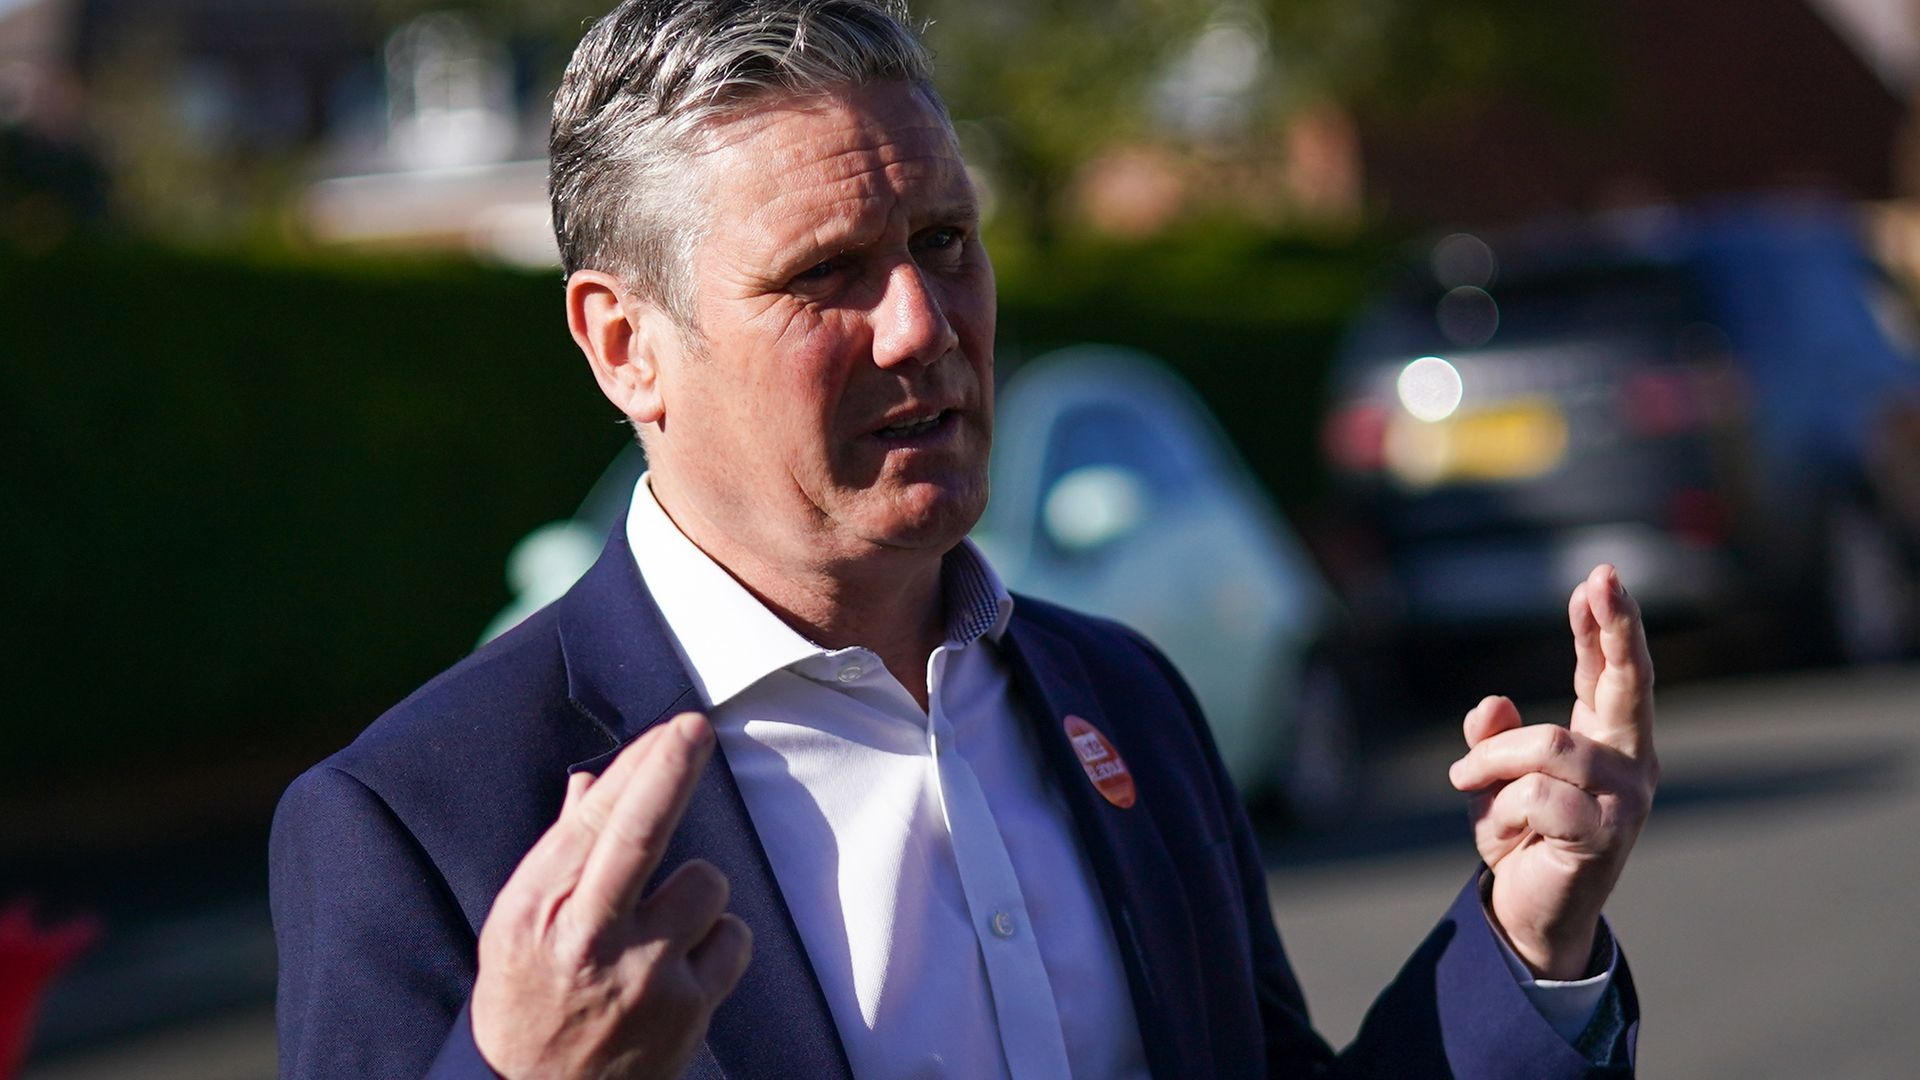 Labour leader Sir Keir Starmer visits St Mary's Community Centre in Pontefract, West Yorkshire, to meet with community workers and ex-miners during campaigning for the election for West Yorkshire mayor - Credit: PA